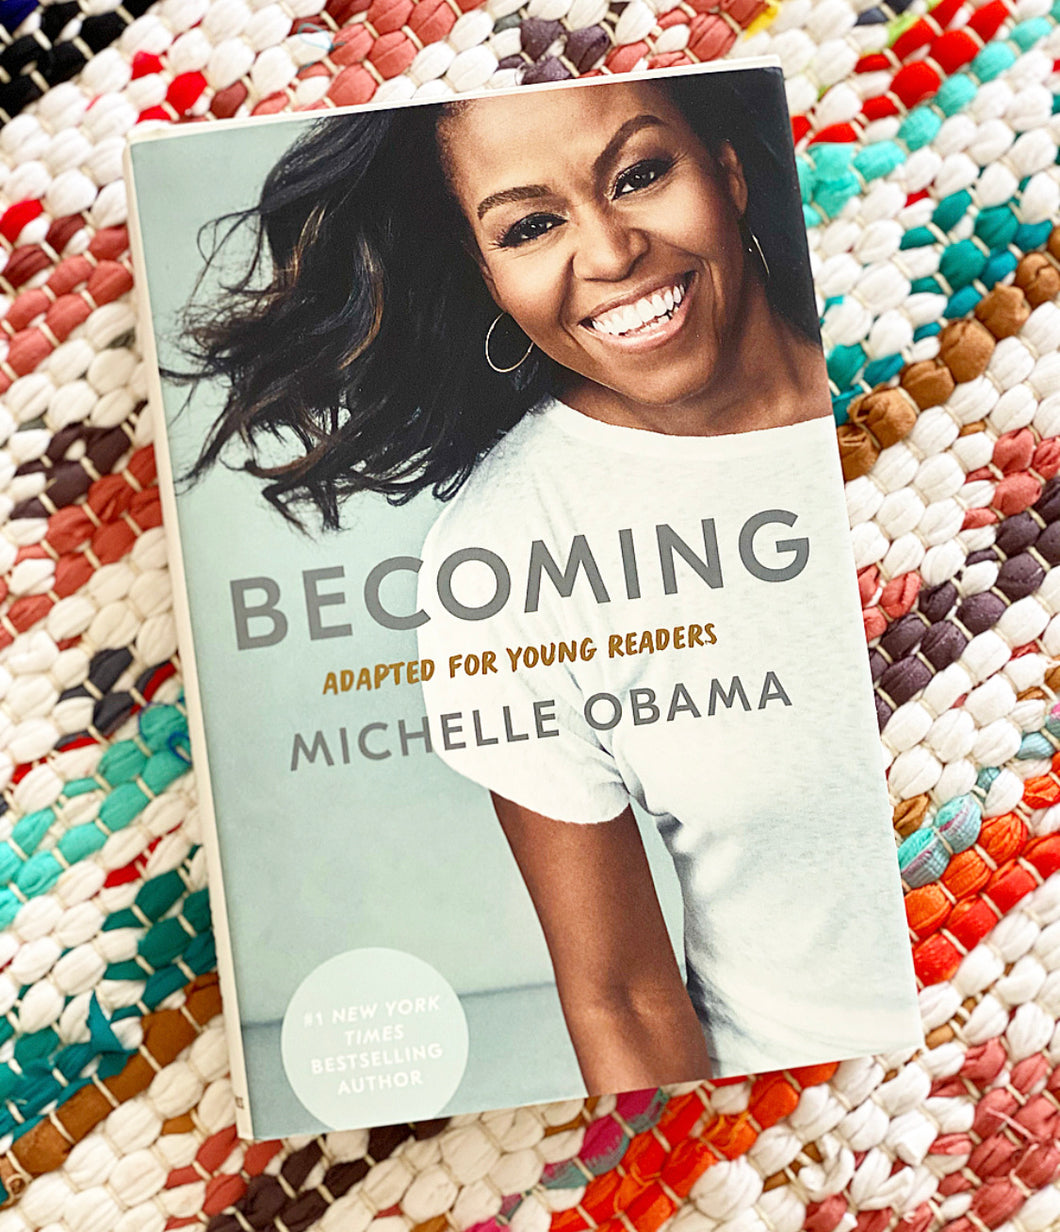 Becoming: Adapted for Young Readers  | MICHELLE OBAMA